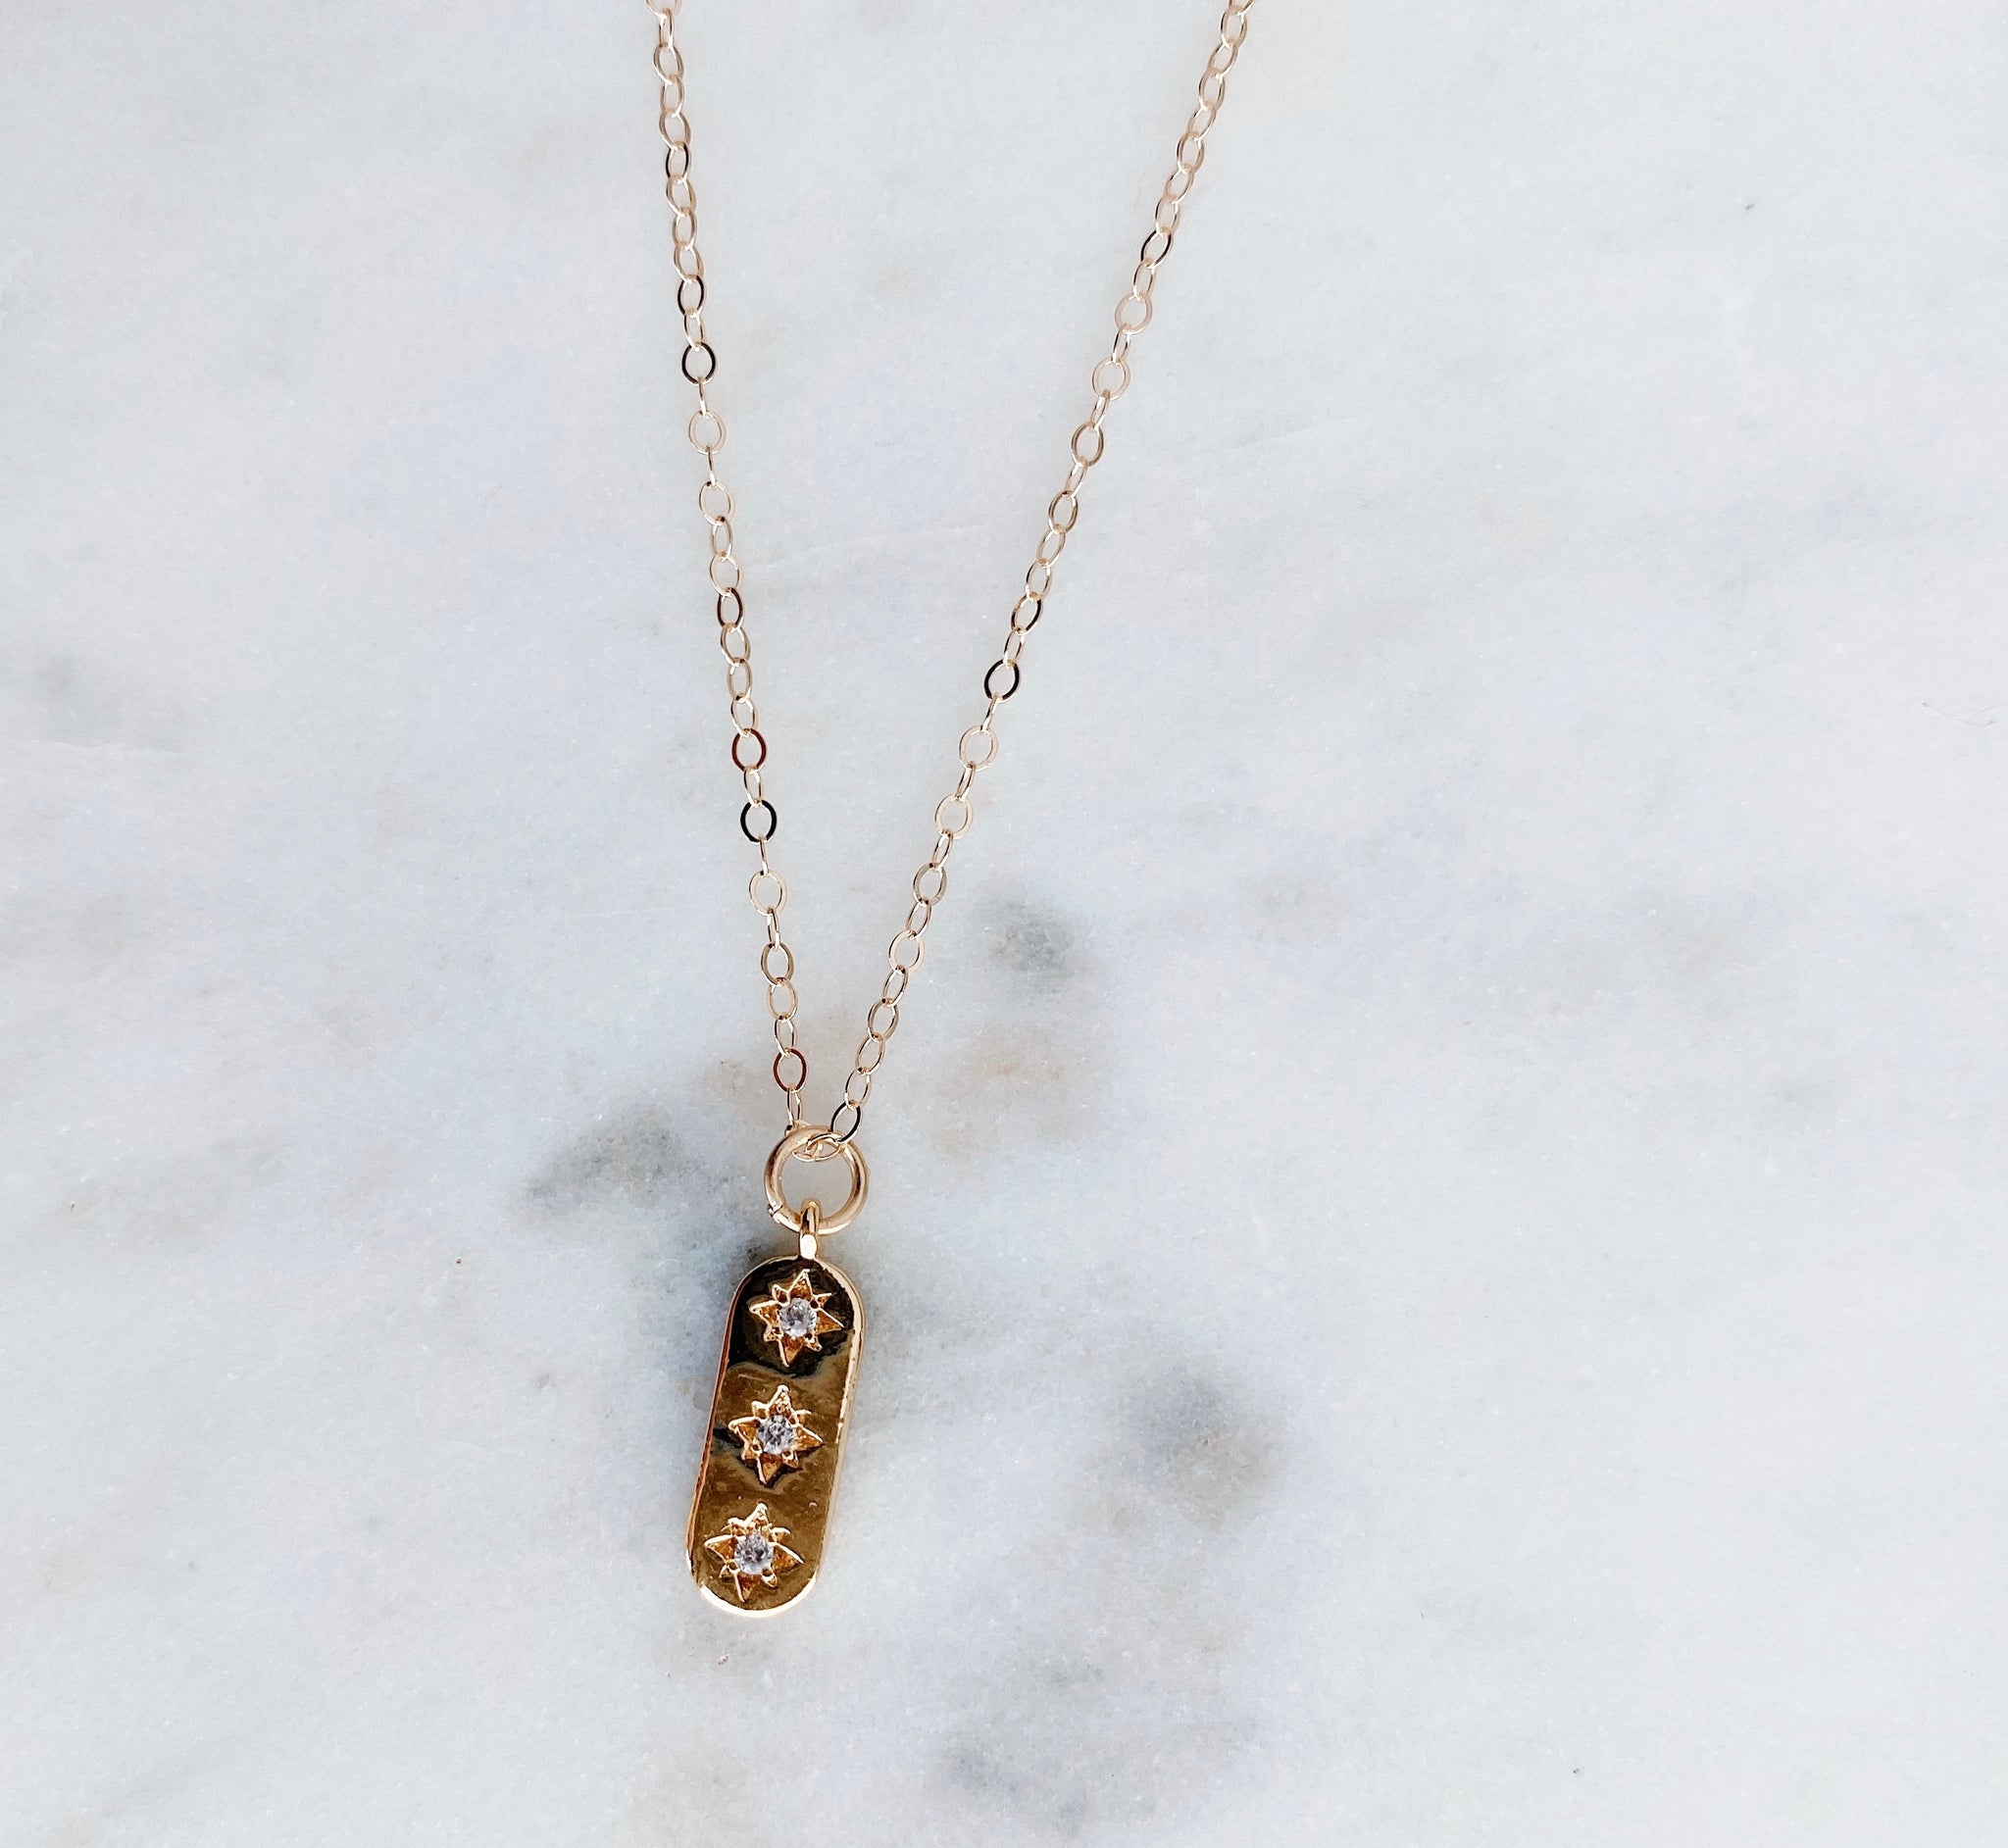 Lucie Mae Necklace